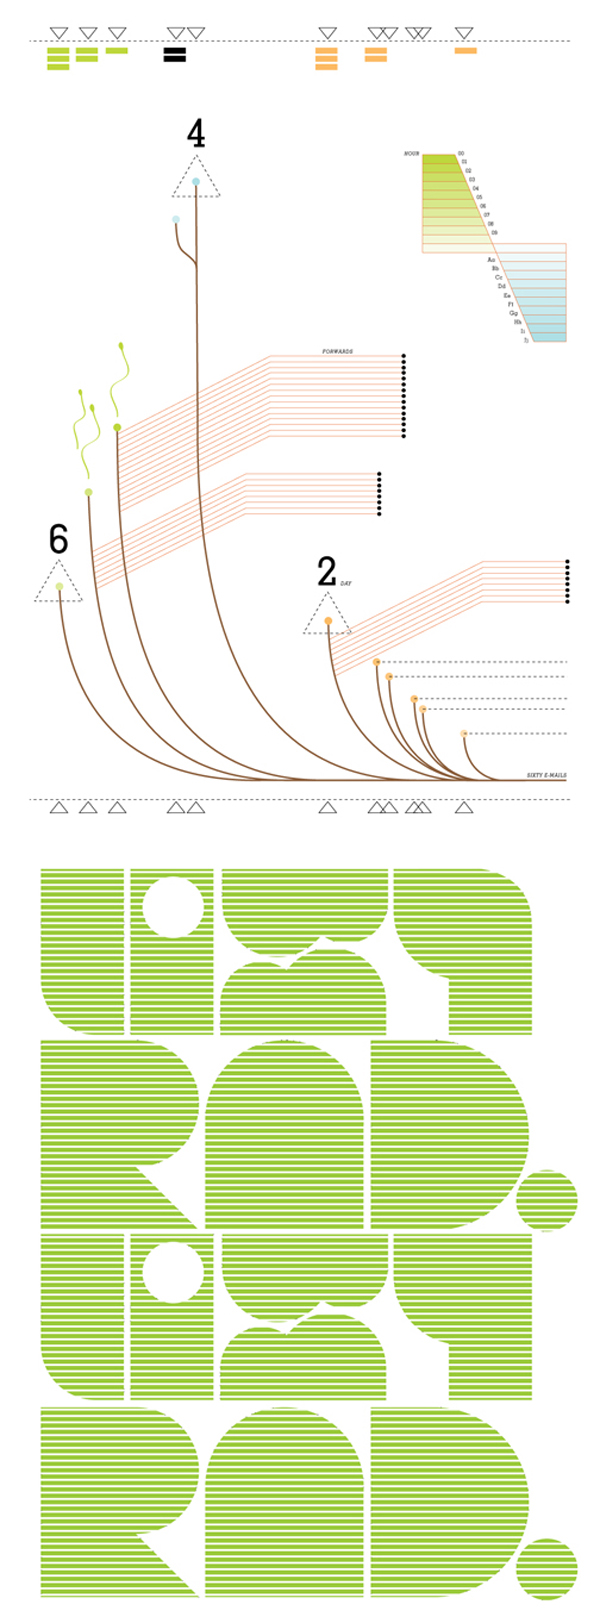 Cardon Webb: Font design and infographic.